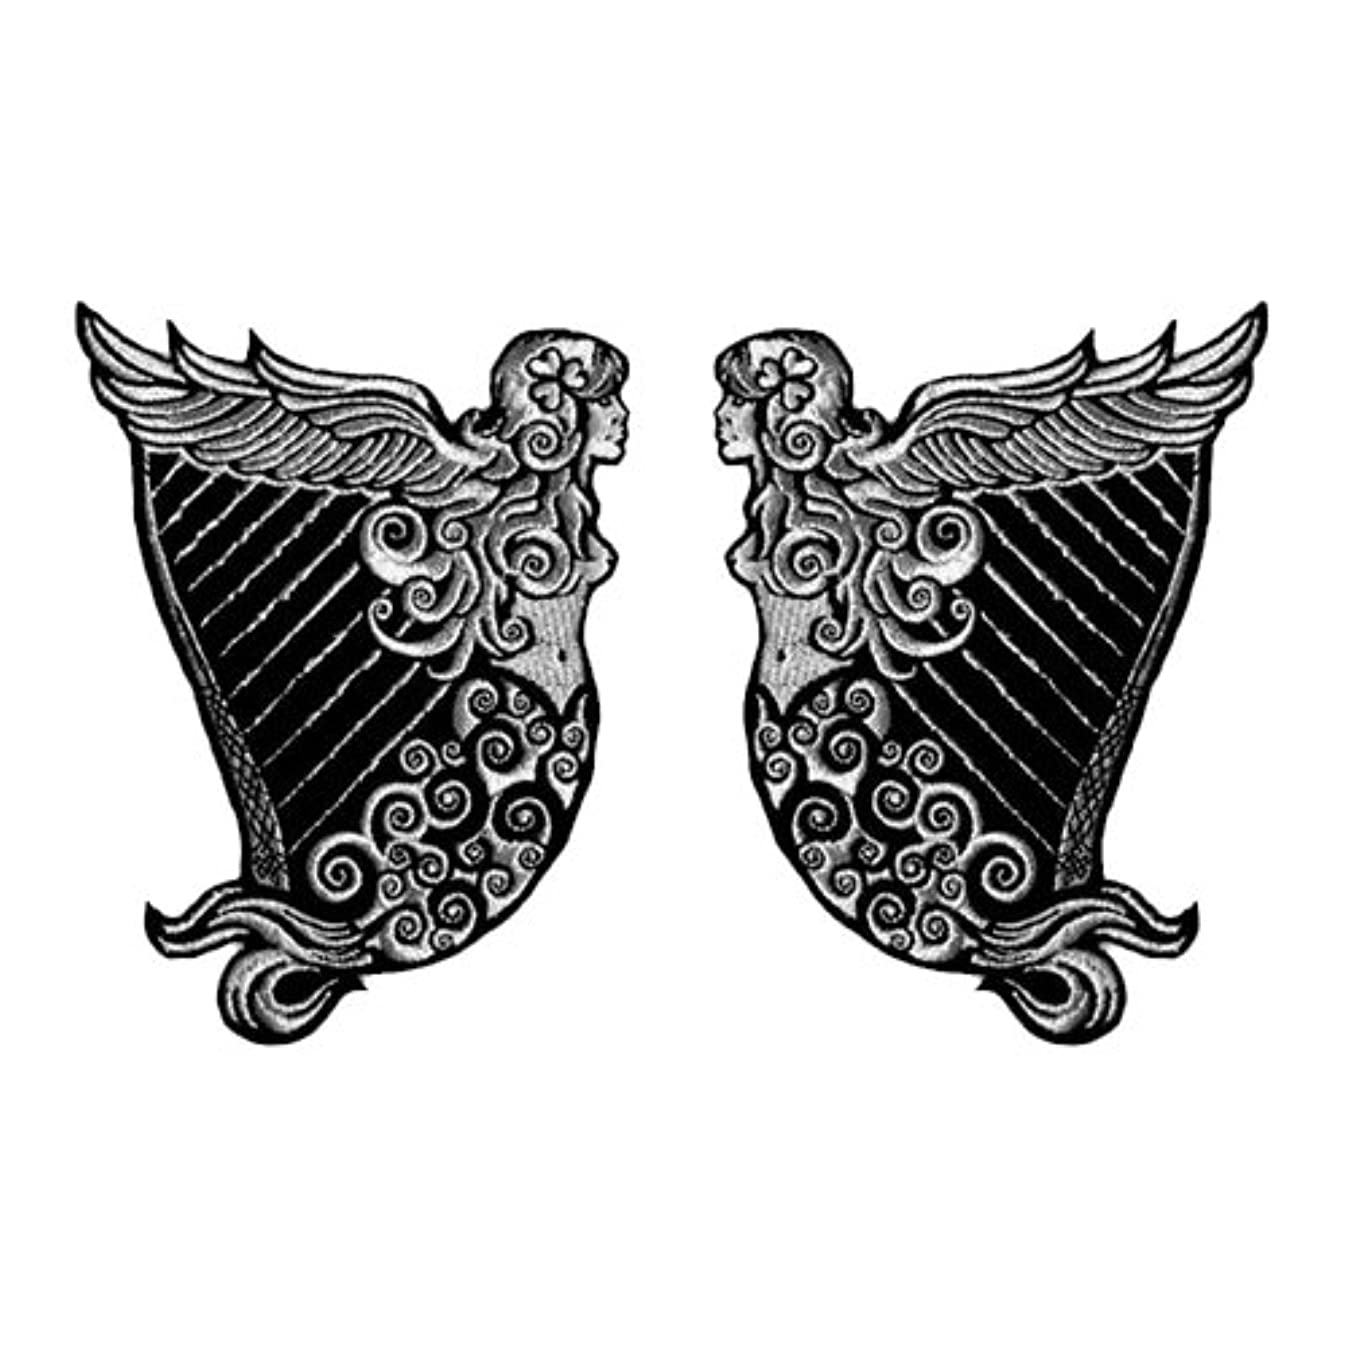 VEGASBEE IRISH HERITAGE HARP WINGED MAIDEN ERIN SILVER METALLIC EMBROIDERED TWO PATCH SET